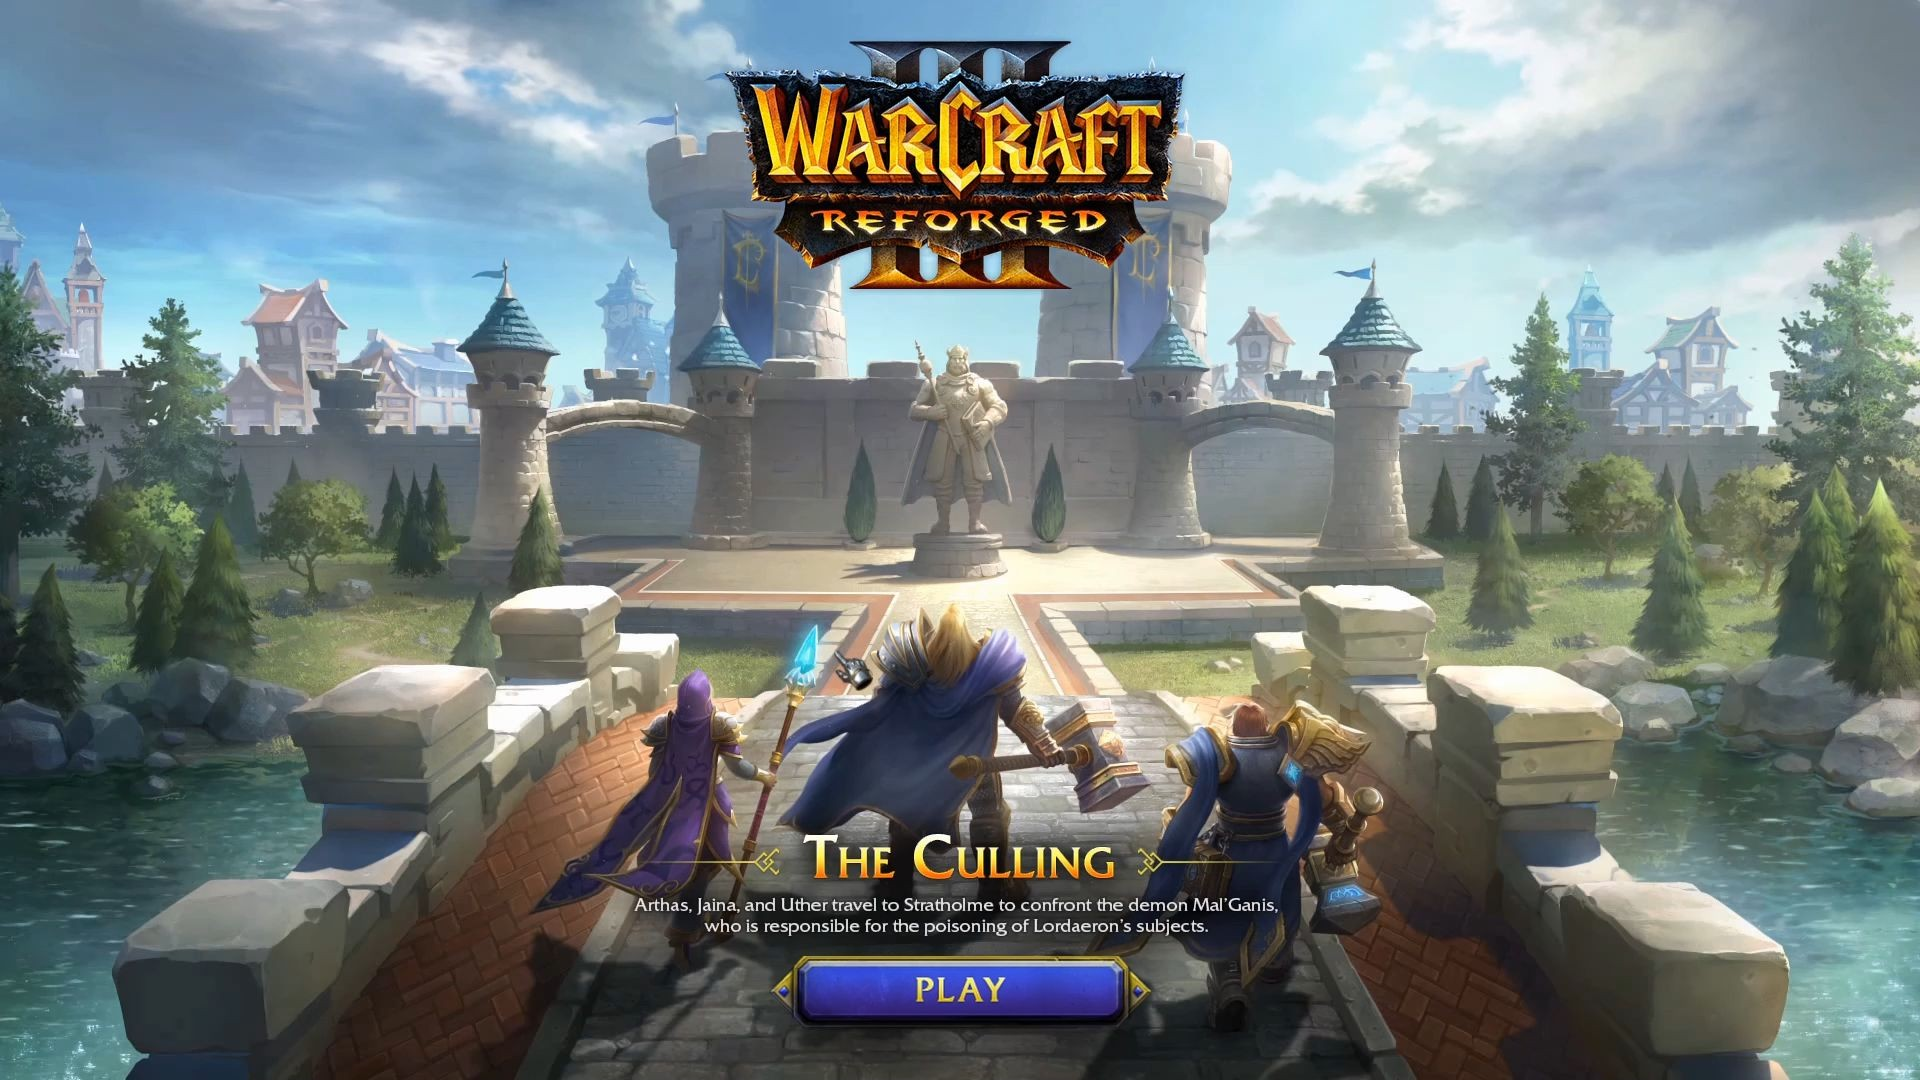 Blizzard announces long-awaited Warcraft 3 remaster at Blizzcon